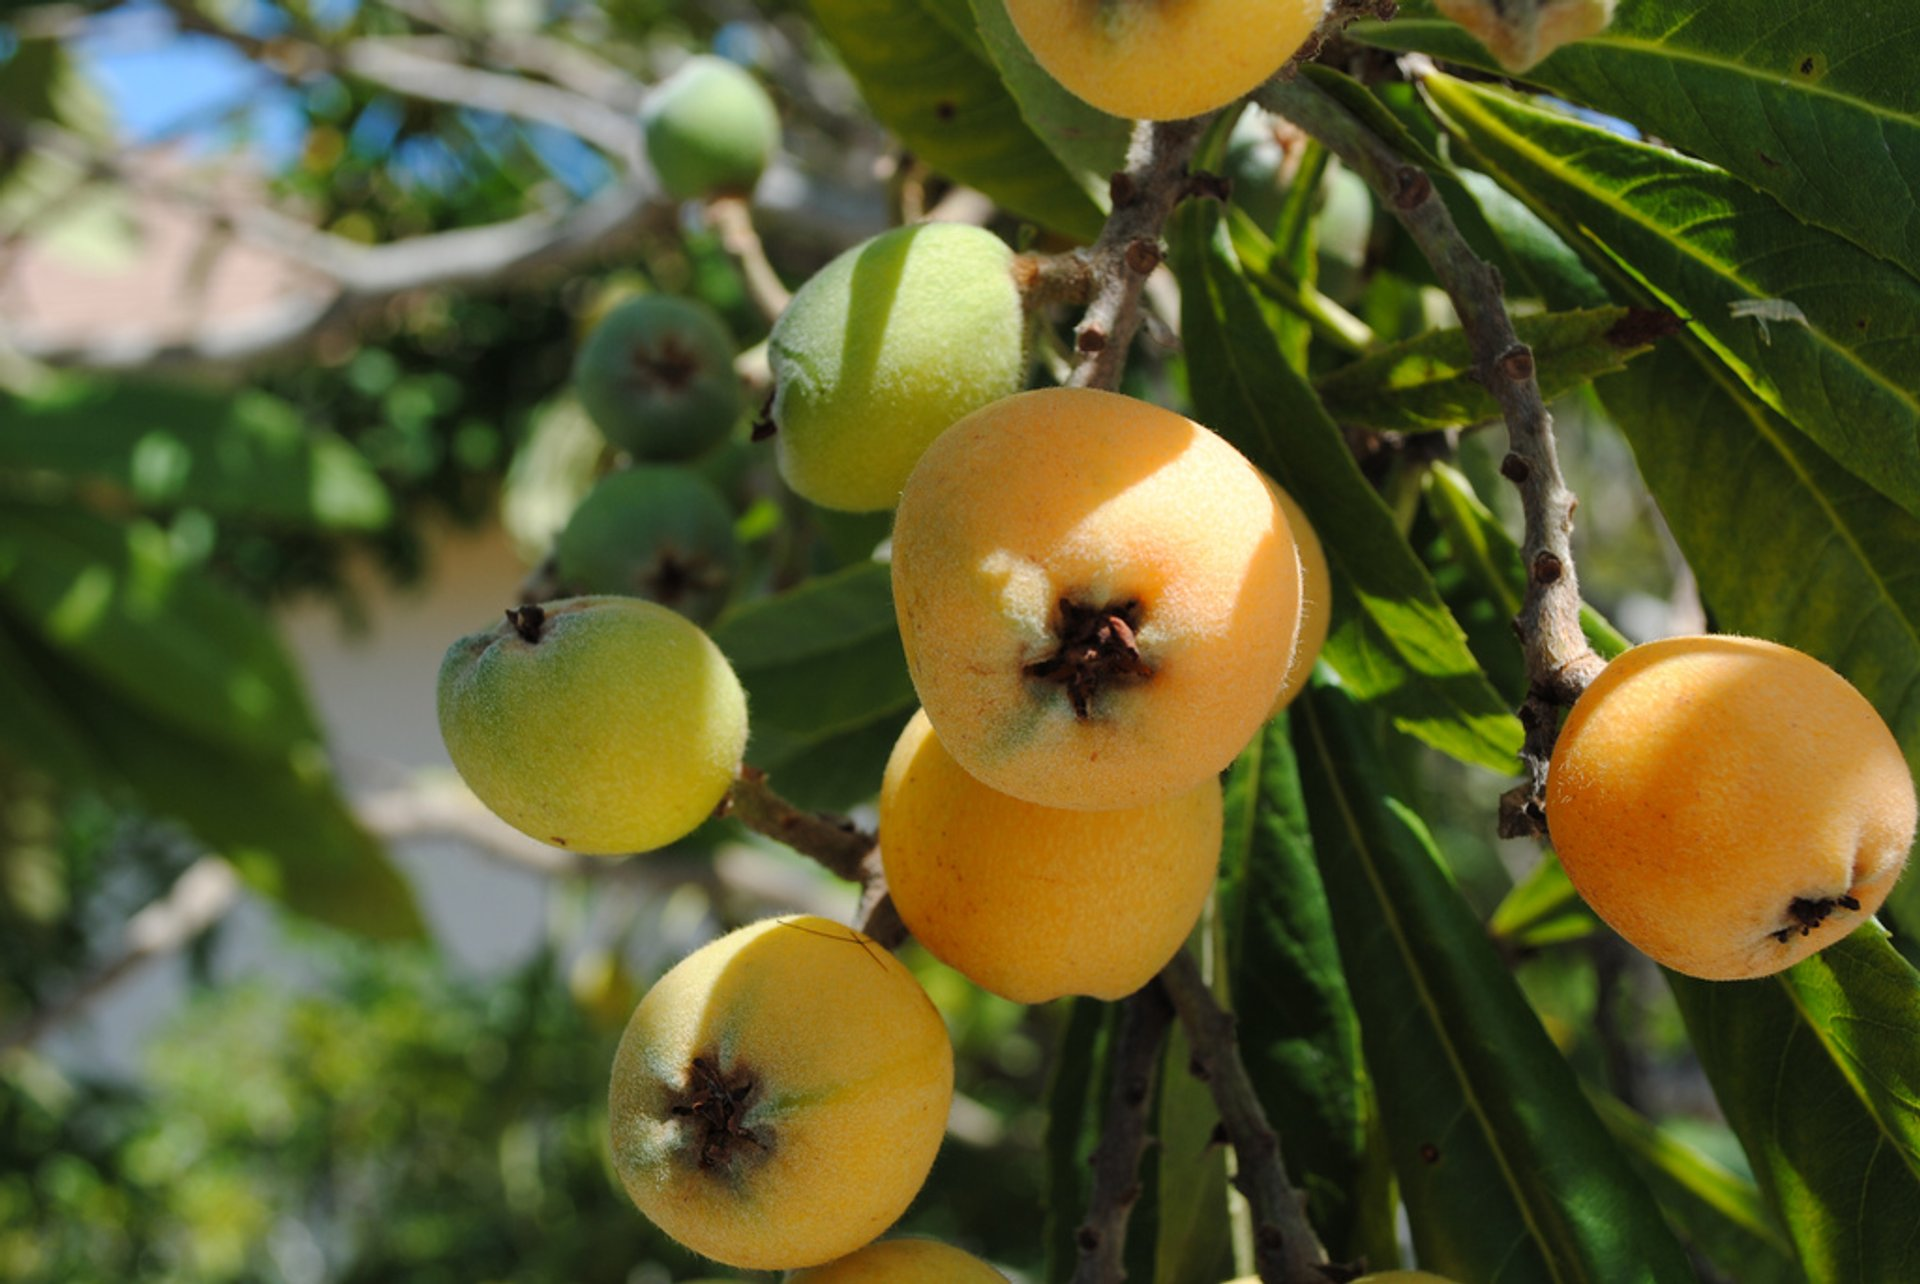 Loquat in Taiwan 2019 - Best Time